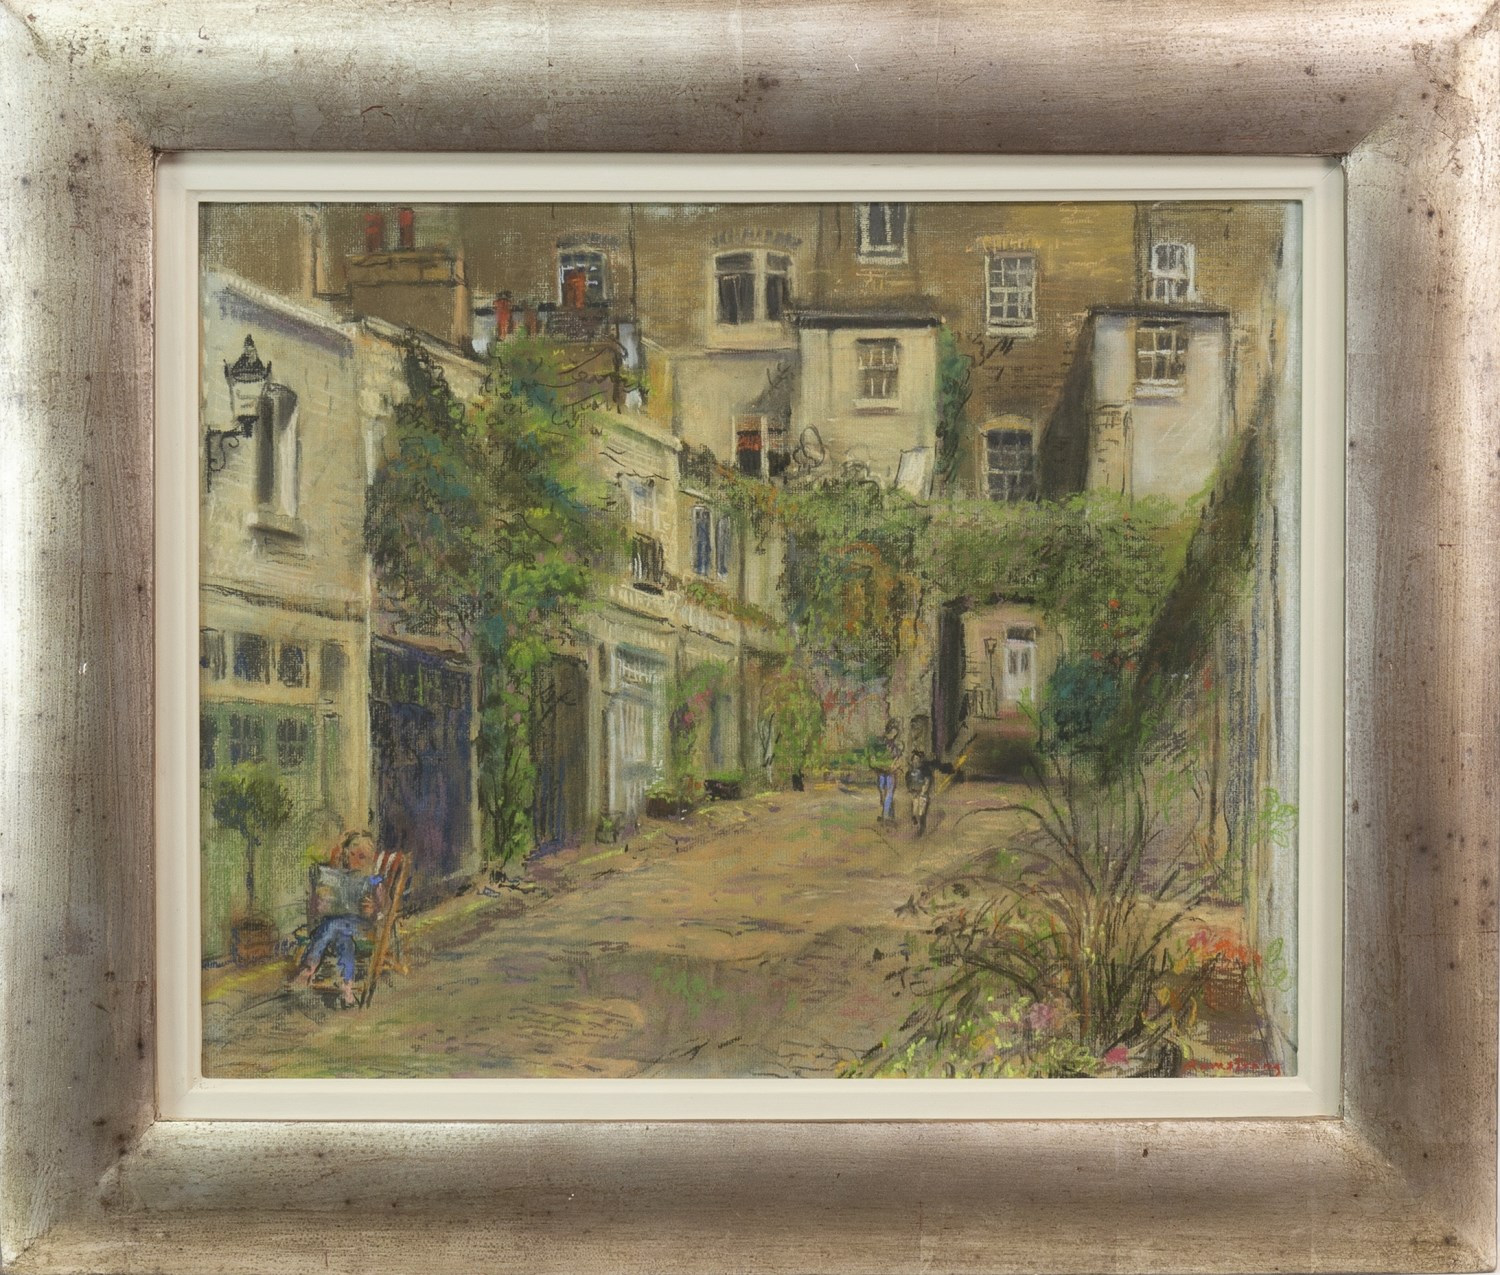 Lot 74 - A LONDON MEWS, A PASTEL ON PAPER BY ANTHONY ARMSTRONG